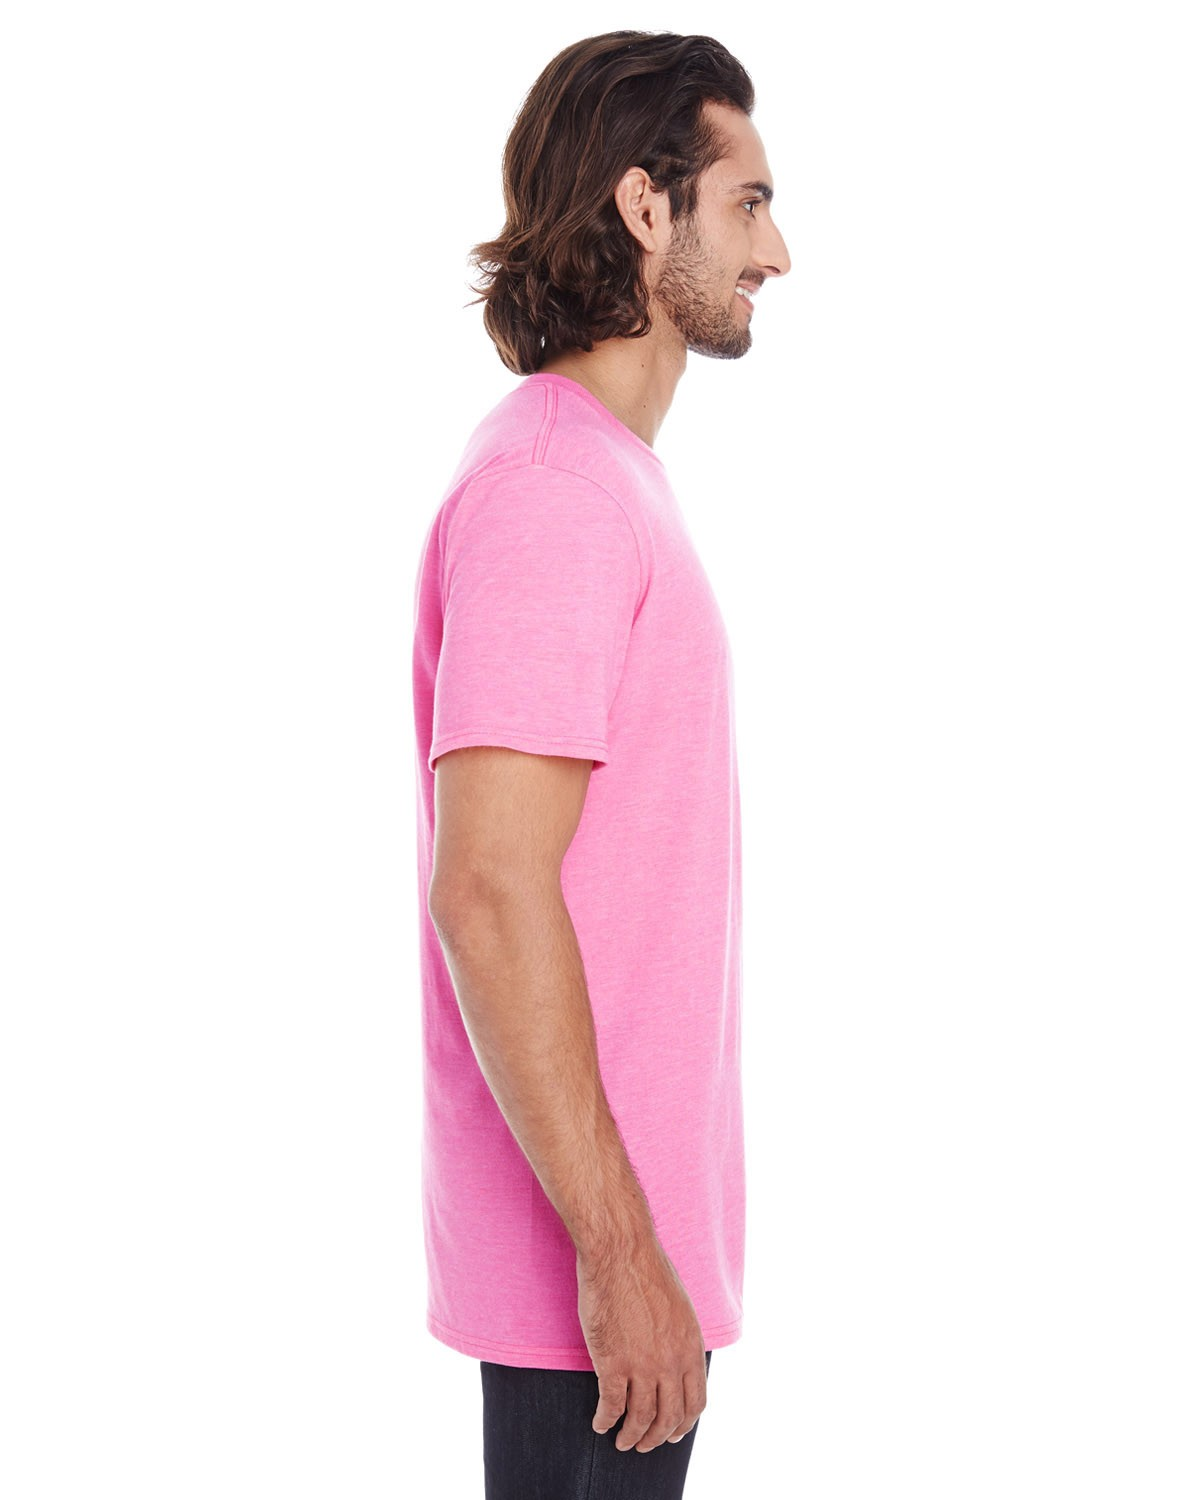 980 Anvil HEATHER HOT PINK